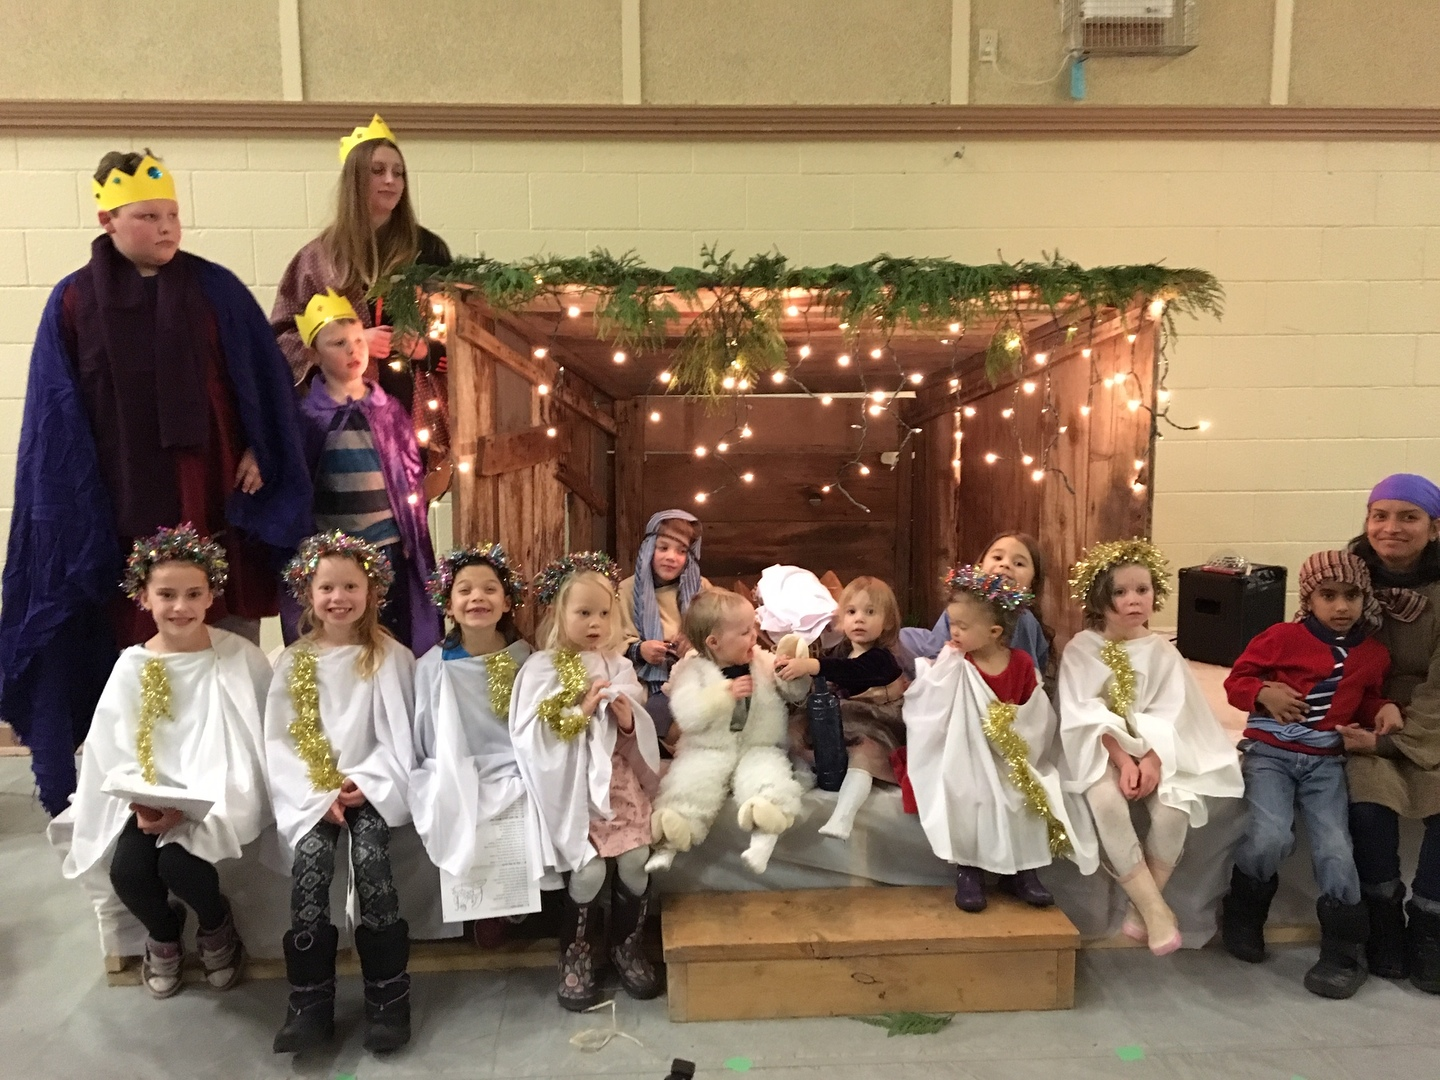 December 16: Annual Christmas Pageant & Potluck